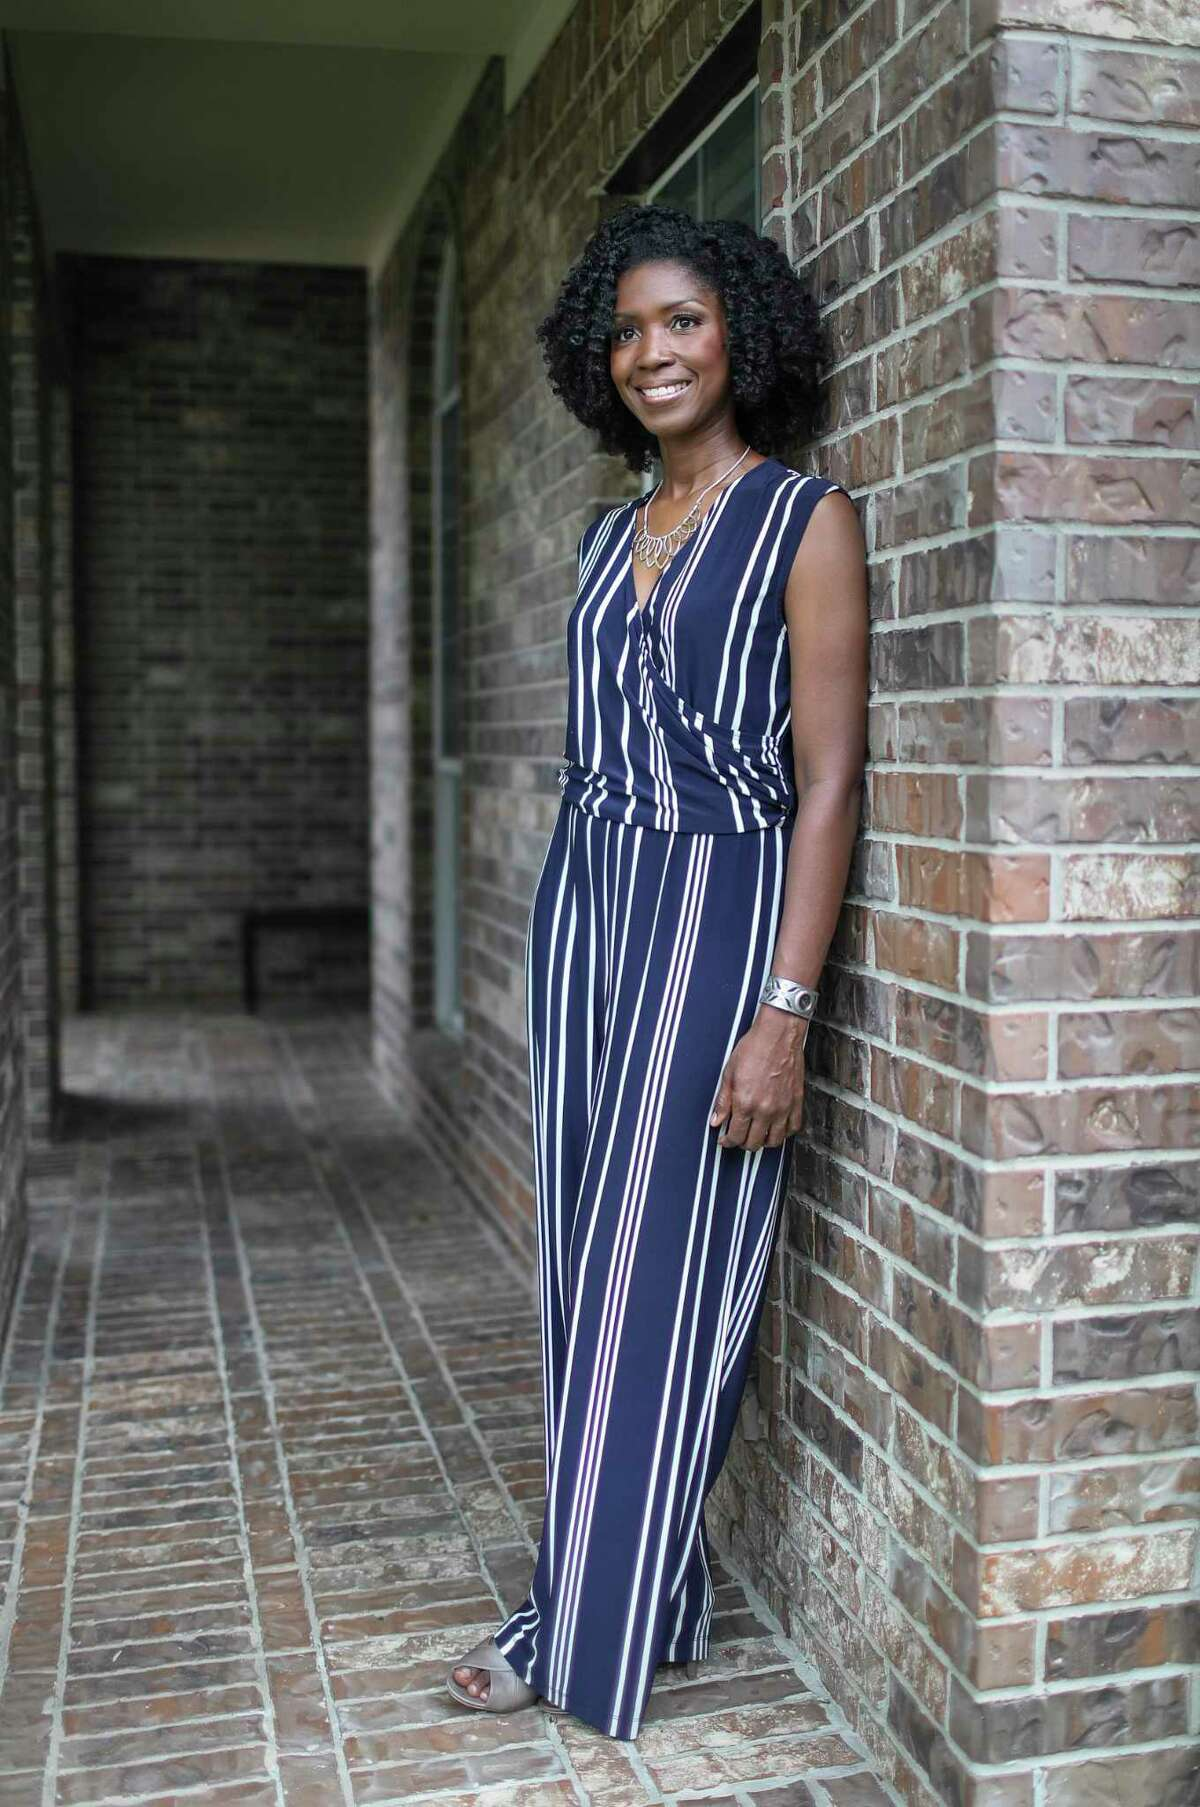 """""""I'm motivated to do the work because I believe we can prevent deaths,"""" said Rheeda Walker, Ph.D., as she posed for a portrait Thursday, May 14, 2020, at her home in Pearland. """"So, my book gives me hope."""" Walker is a professor of psychology at the University of Houston and a licensed psychologist. She wrote a book exploring mental health challenges faced by African Americans, including rising suicide rates. She said she started studying the issue in the early 1990's as suicide rates were """"increasing exponentially."""" She also described high rates of suicide for African-American children between the ages of 5 and 11."""